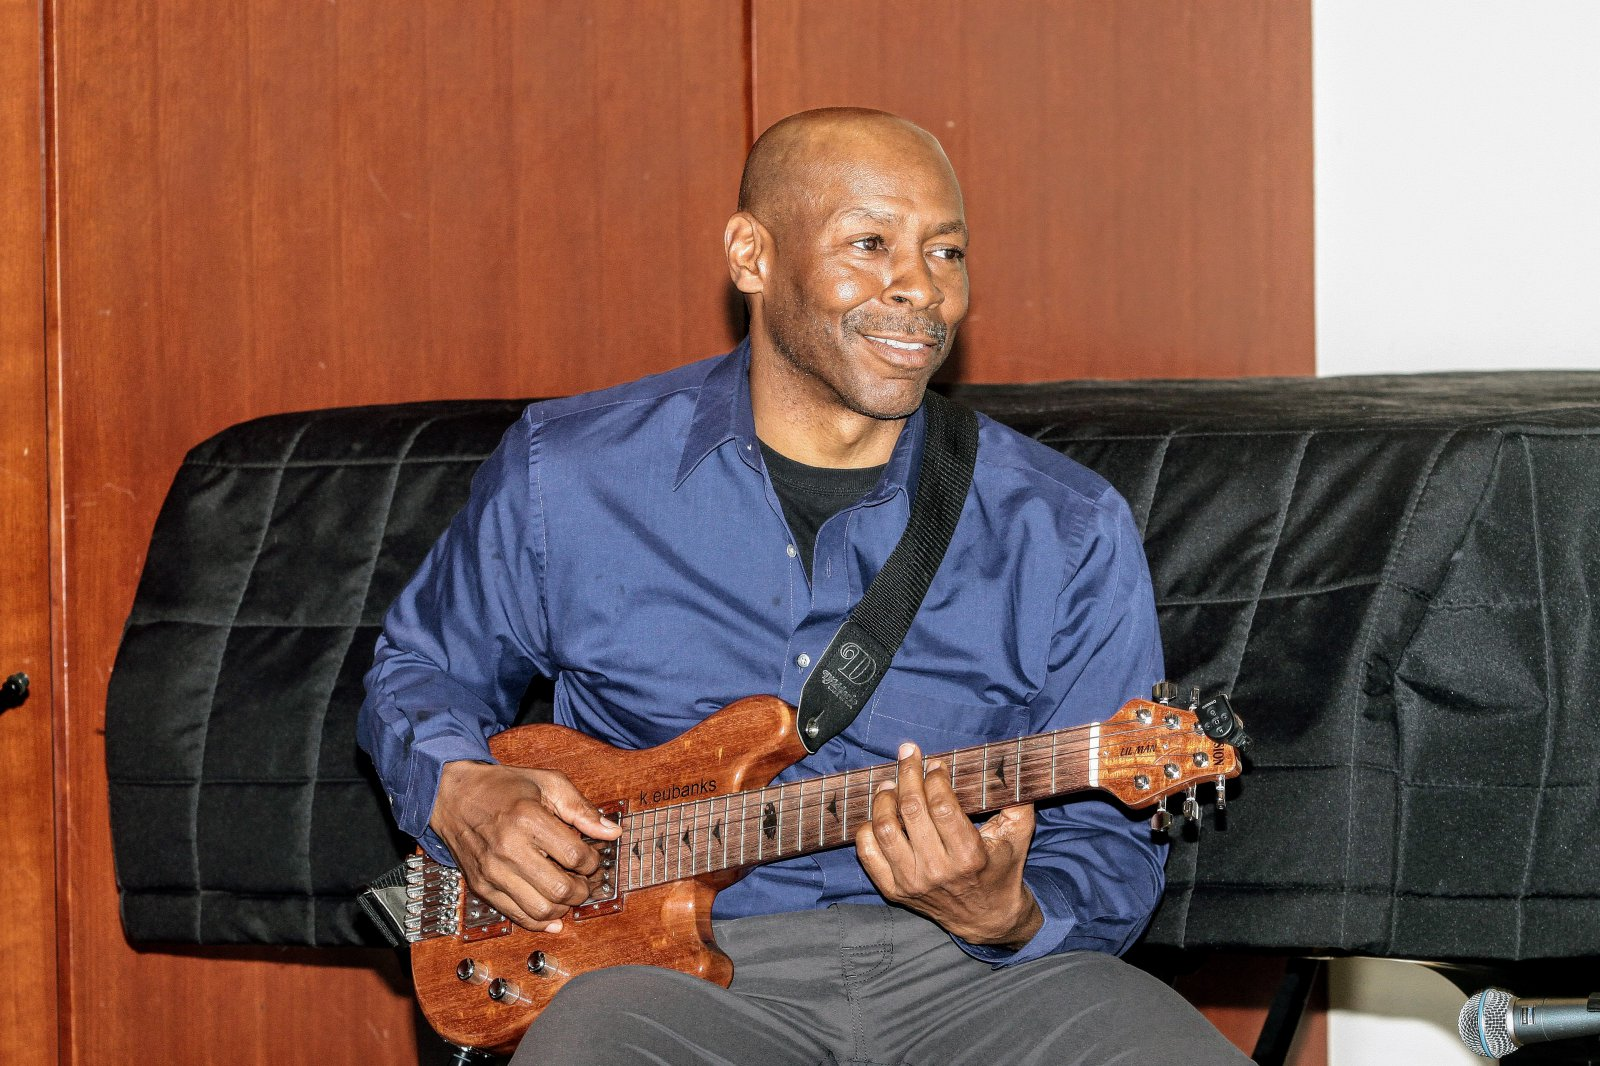 Kevin Eubanks at the Jazz Master Class held Saturday, August 19, 201